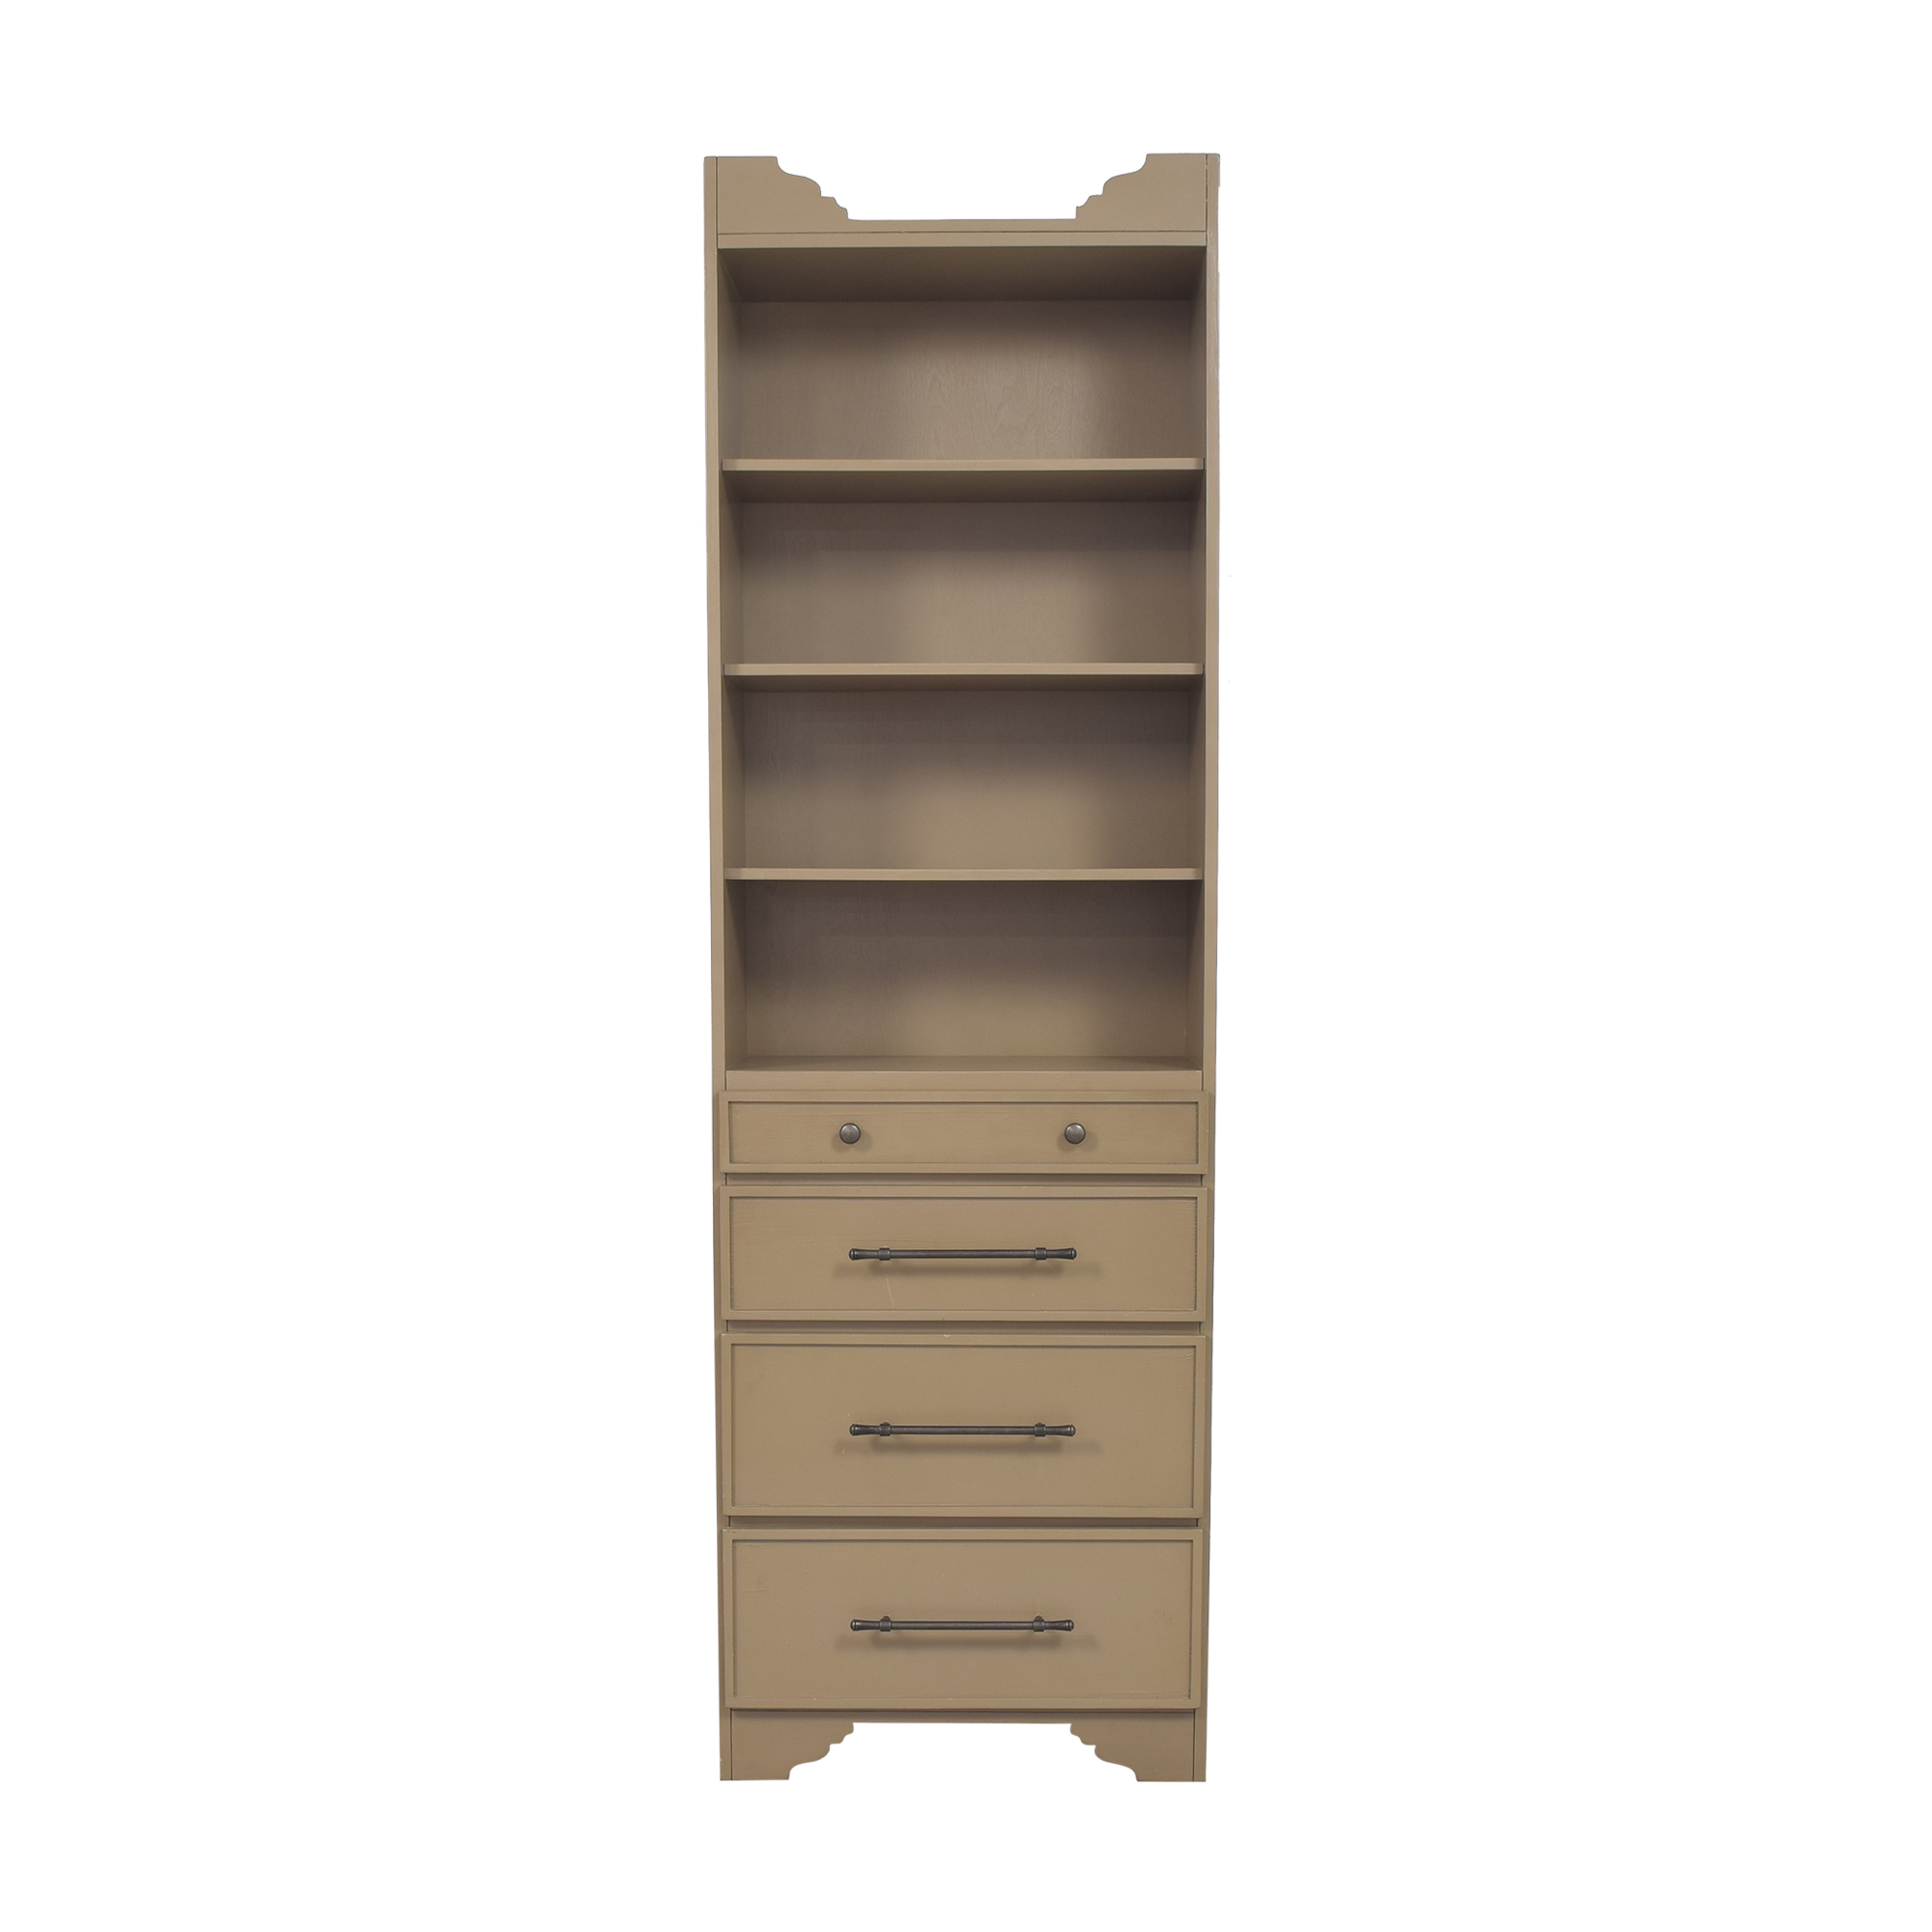 Ballard Designs Ballard Designs Sarah Storage Tower with Drawers on sale